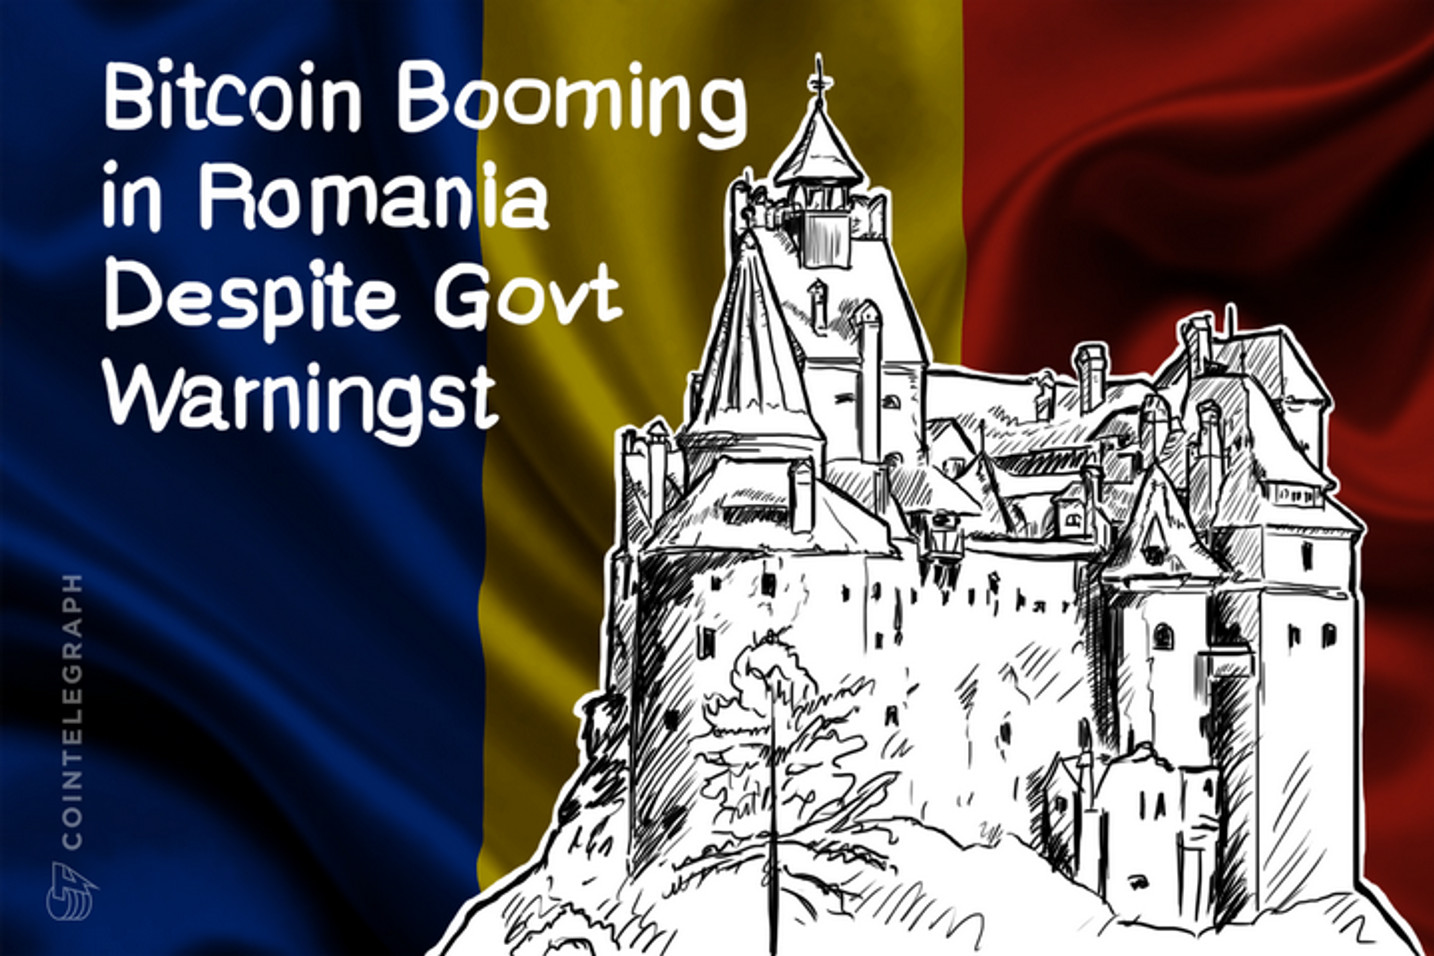 Bitcoin Booming in Romania Despite Govt Warnings